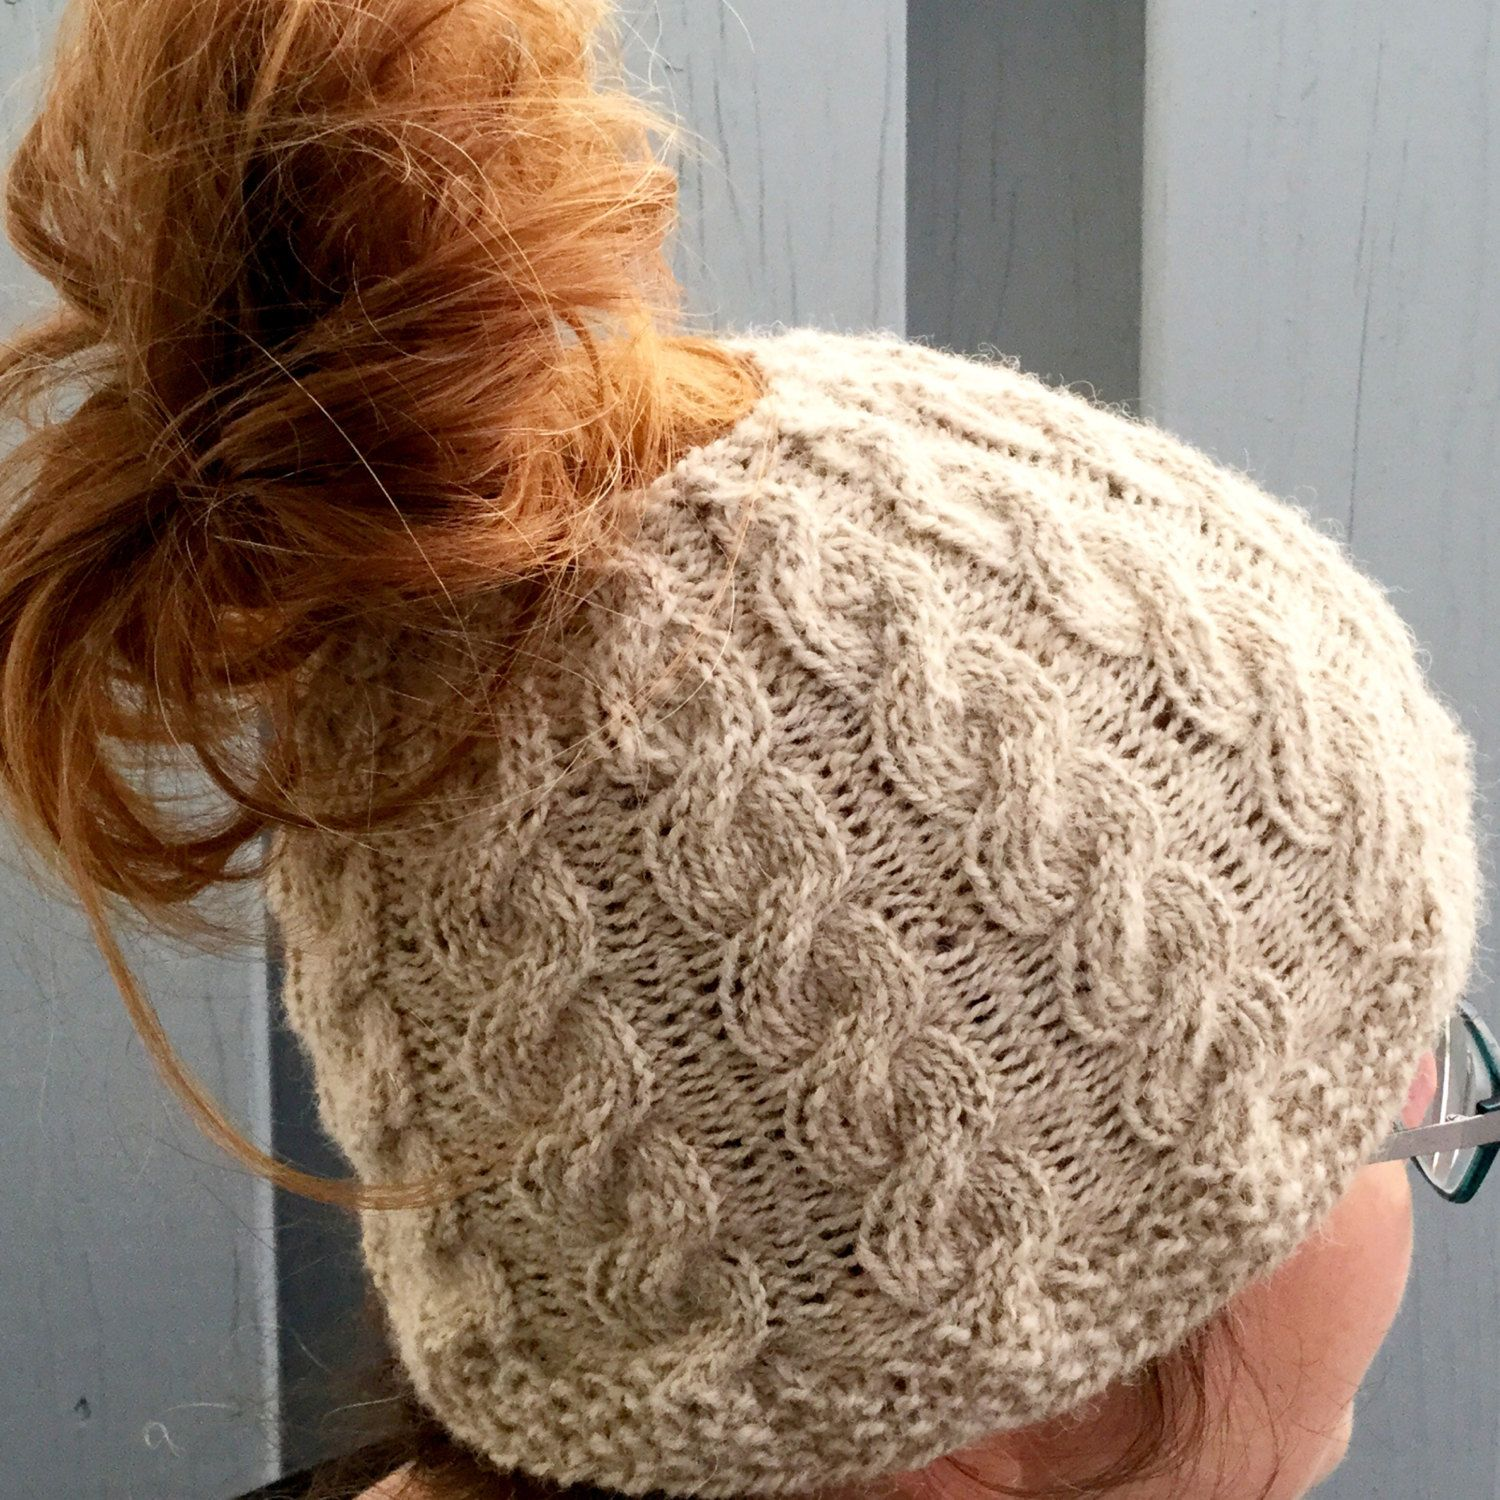 ce22a718c Knitting Pattern for Charlotte Cable Bun Beanie - Simpler than it ...